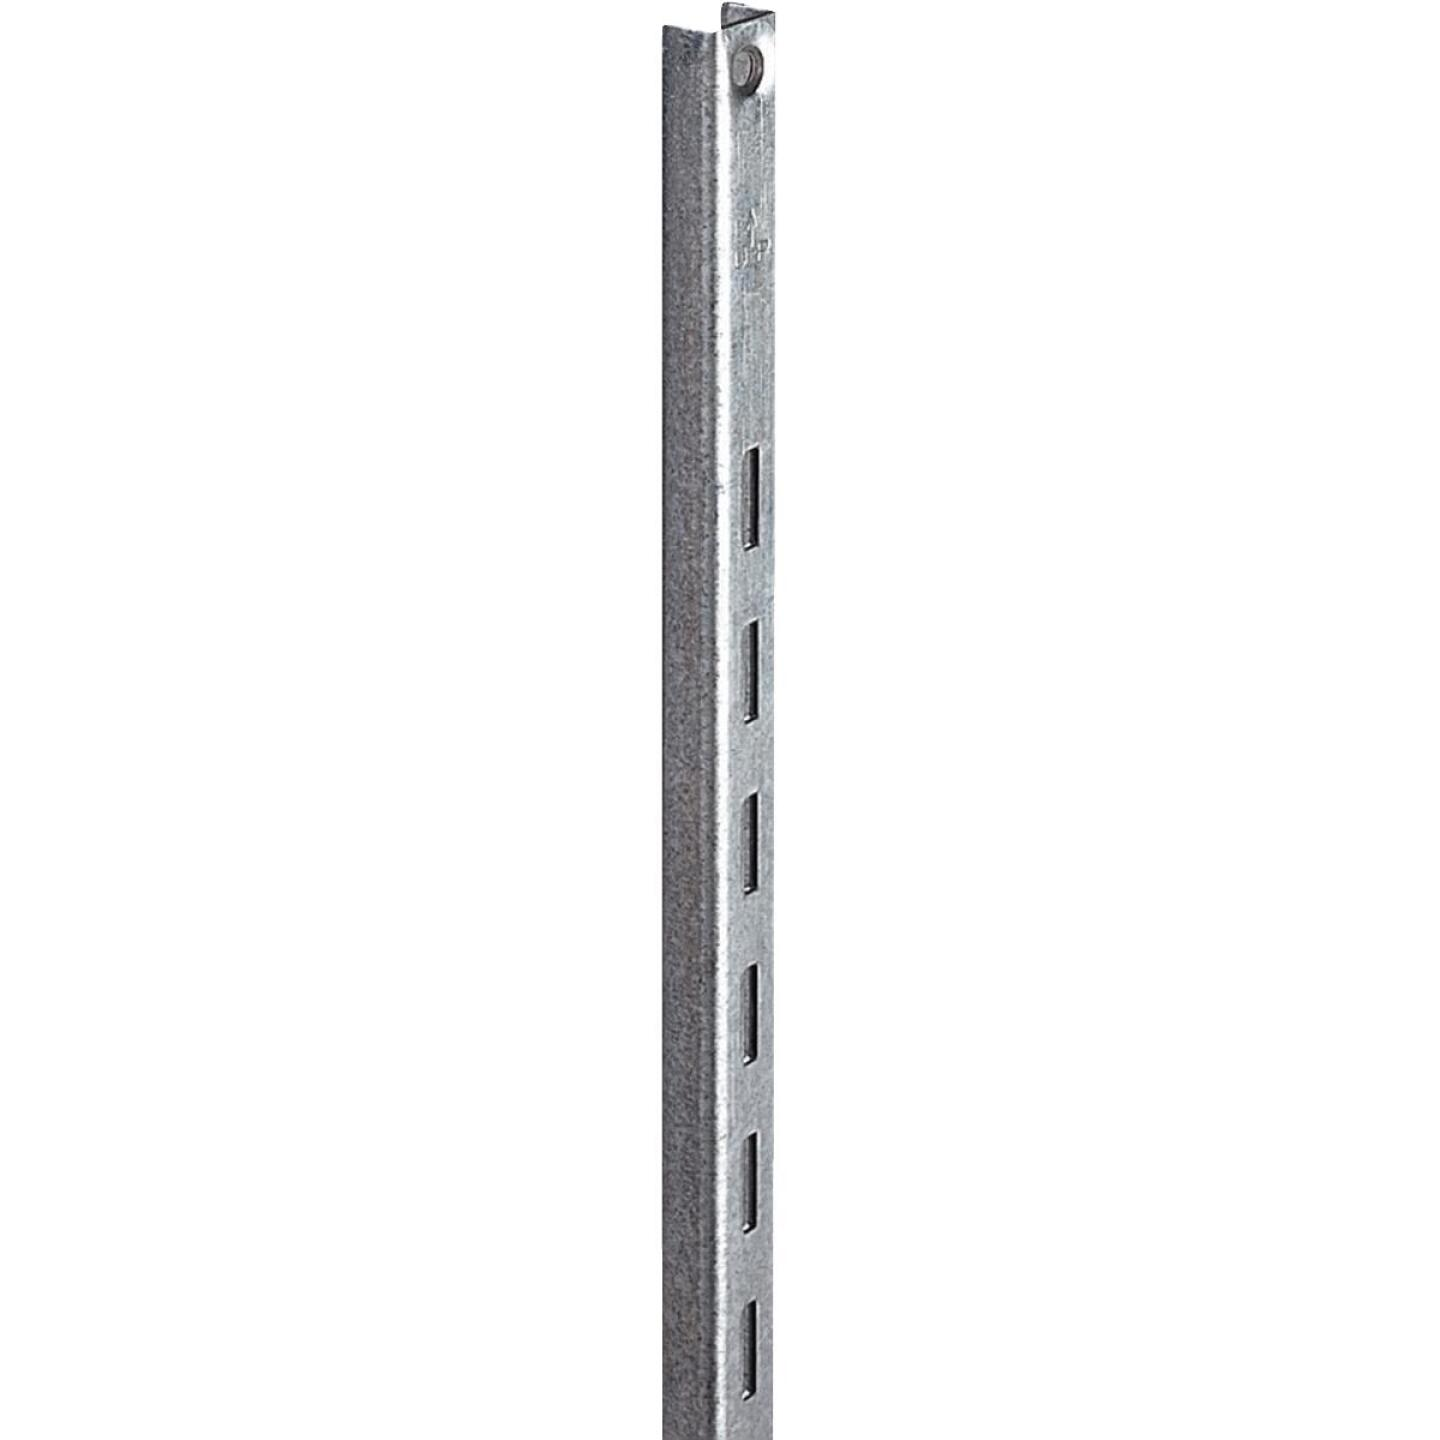 Knape & Vogt 80 Series 72 In. Titanium Steel Adjustable Shelf Standard Image 1